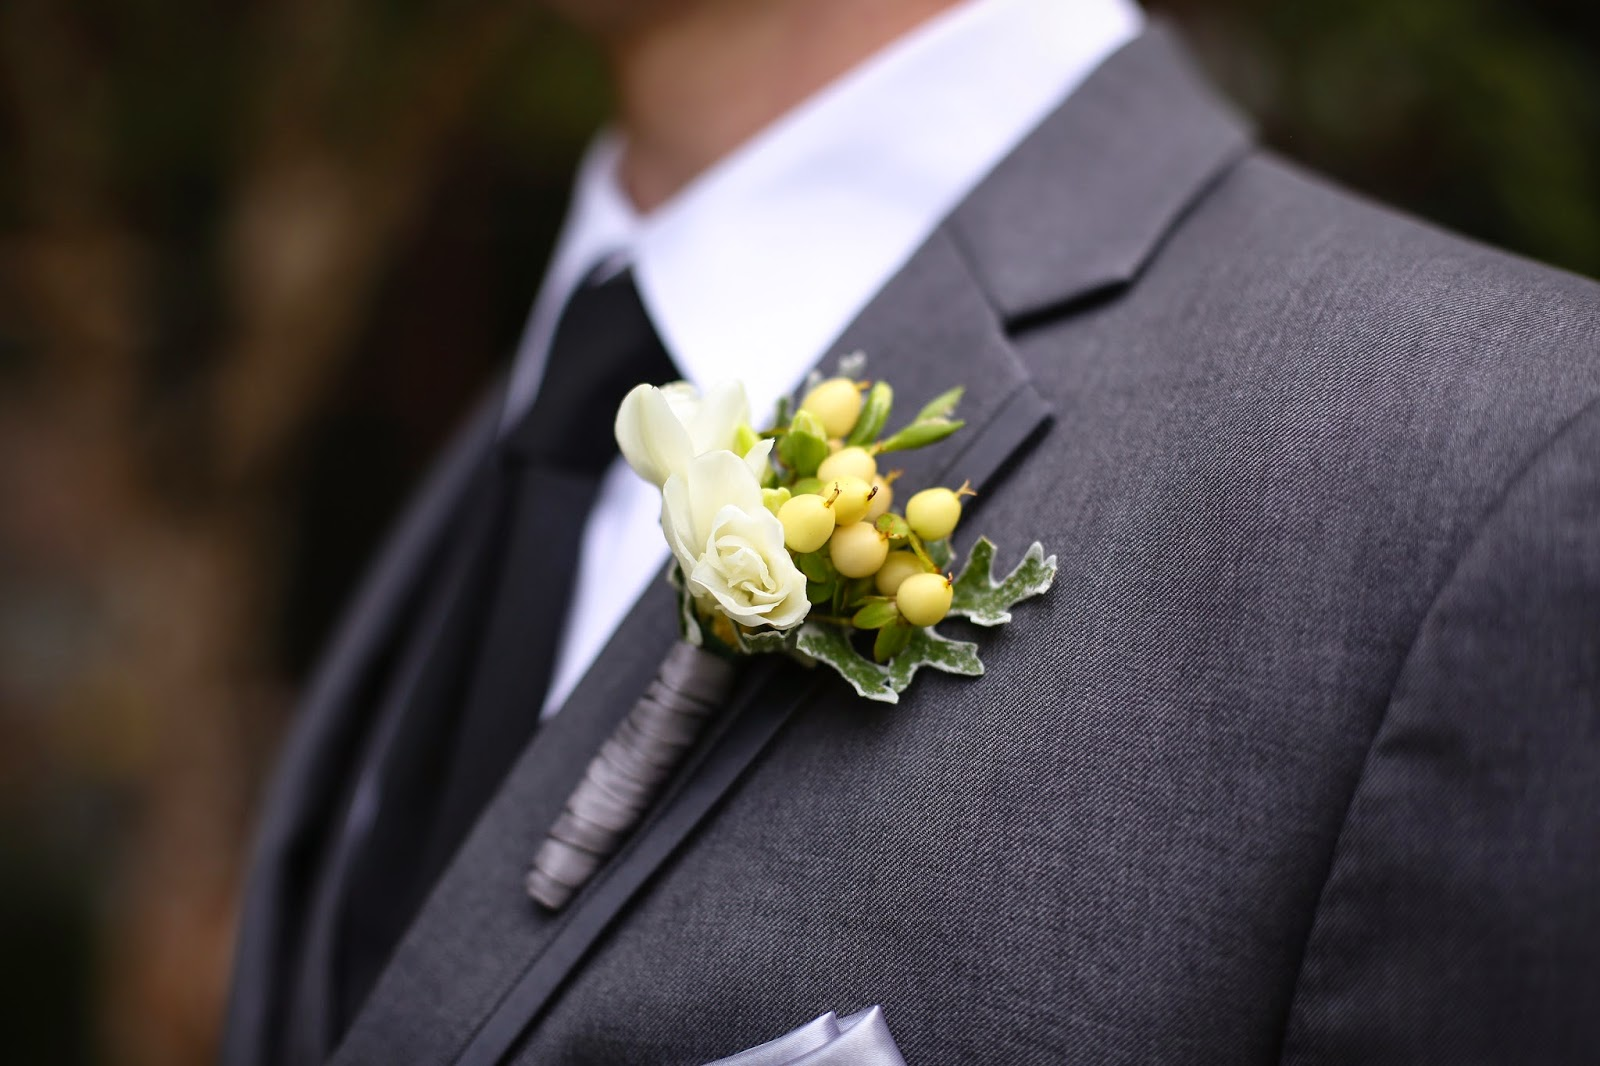 Lake Placid Wedding - The Whiteface Lodge Wedding - Hypericum Berry, White Freesia Boutonniere - Upstate NY Wedding - Splendid Stems Floral Designs